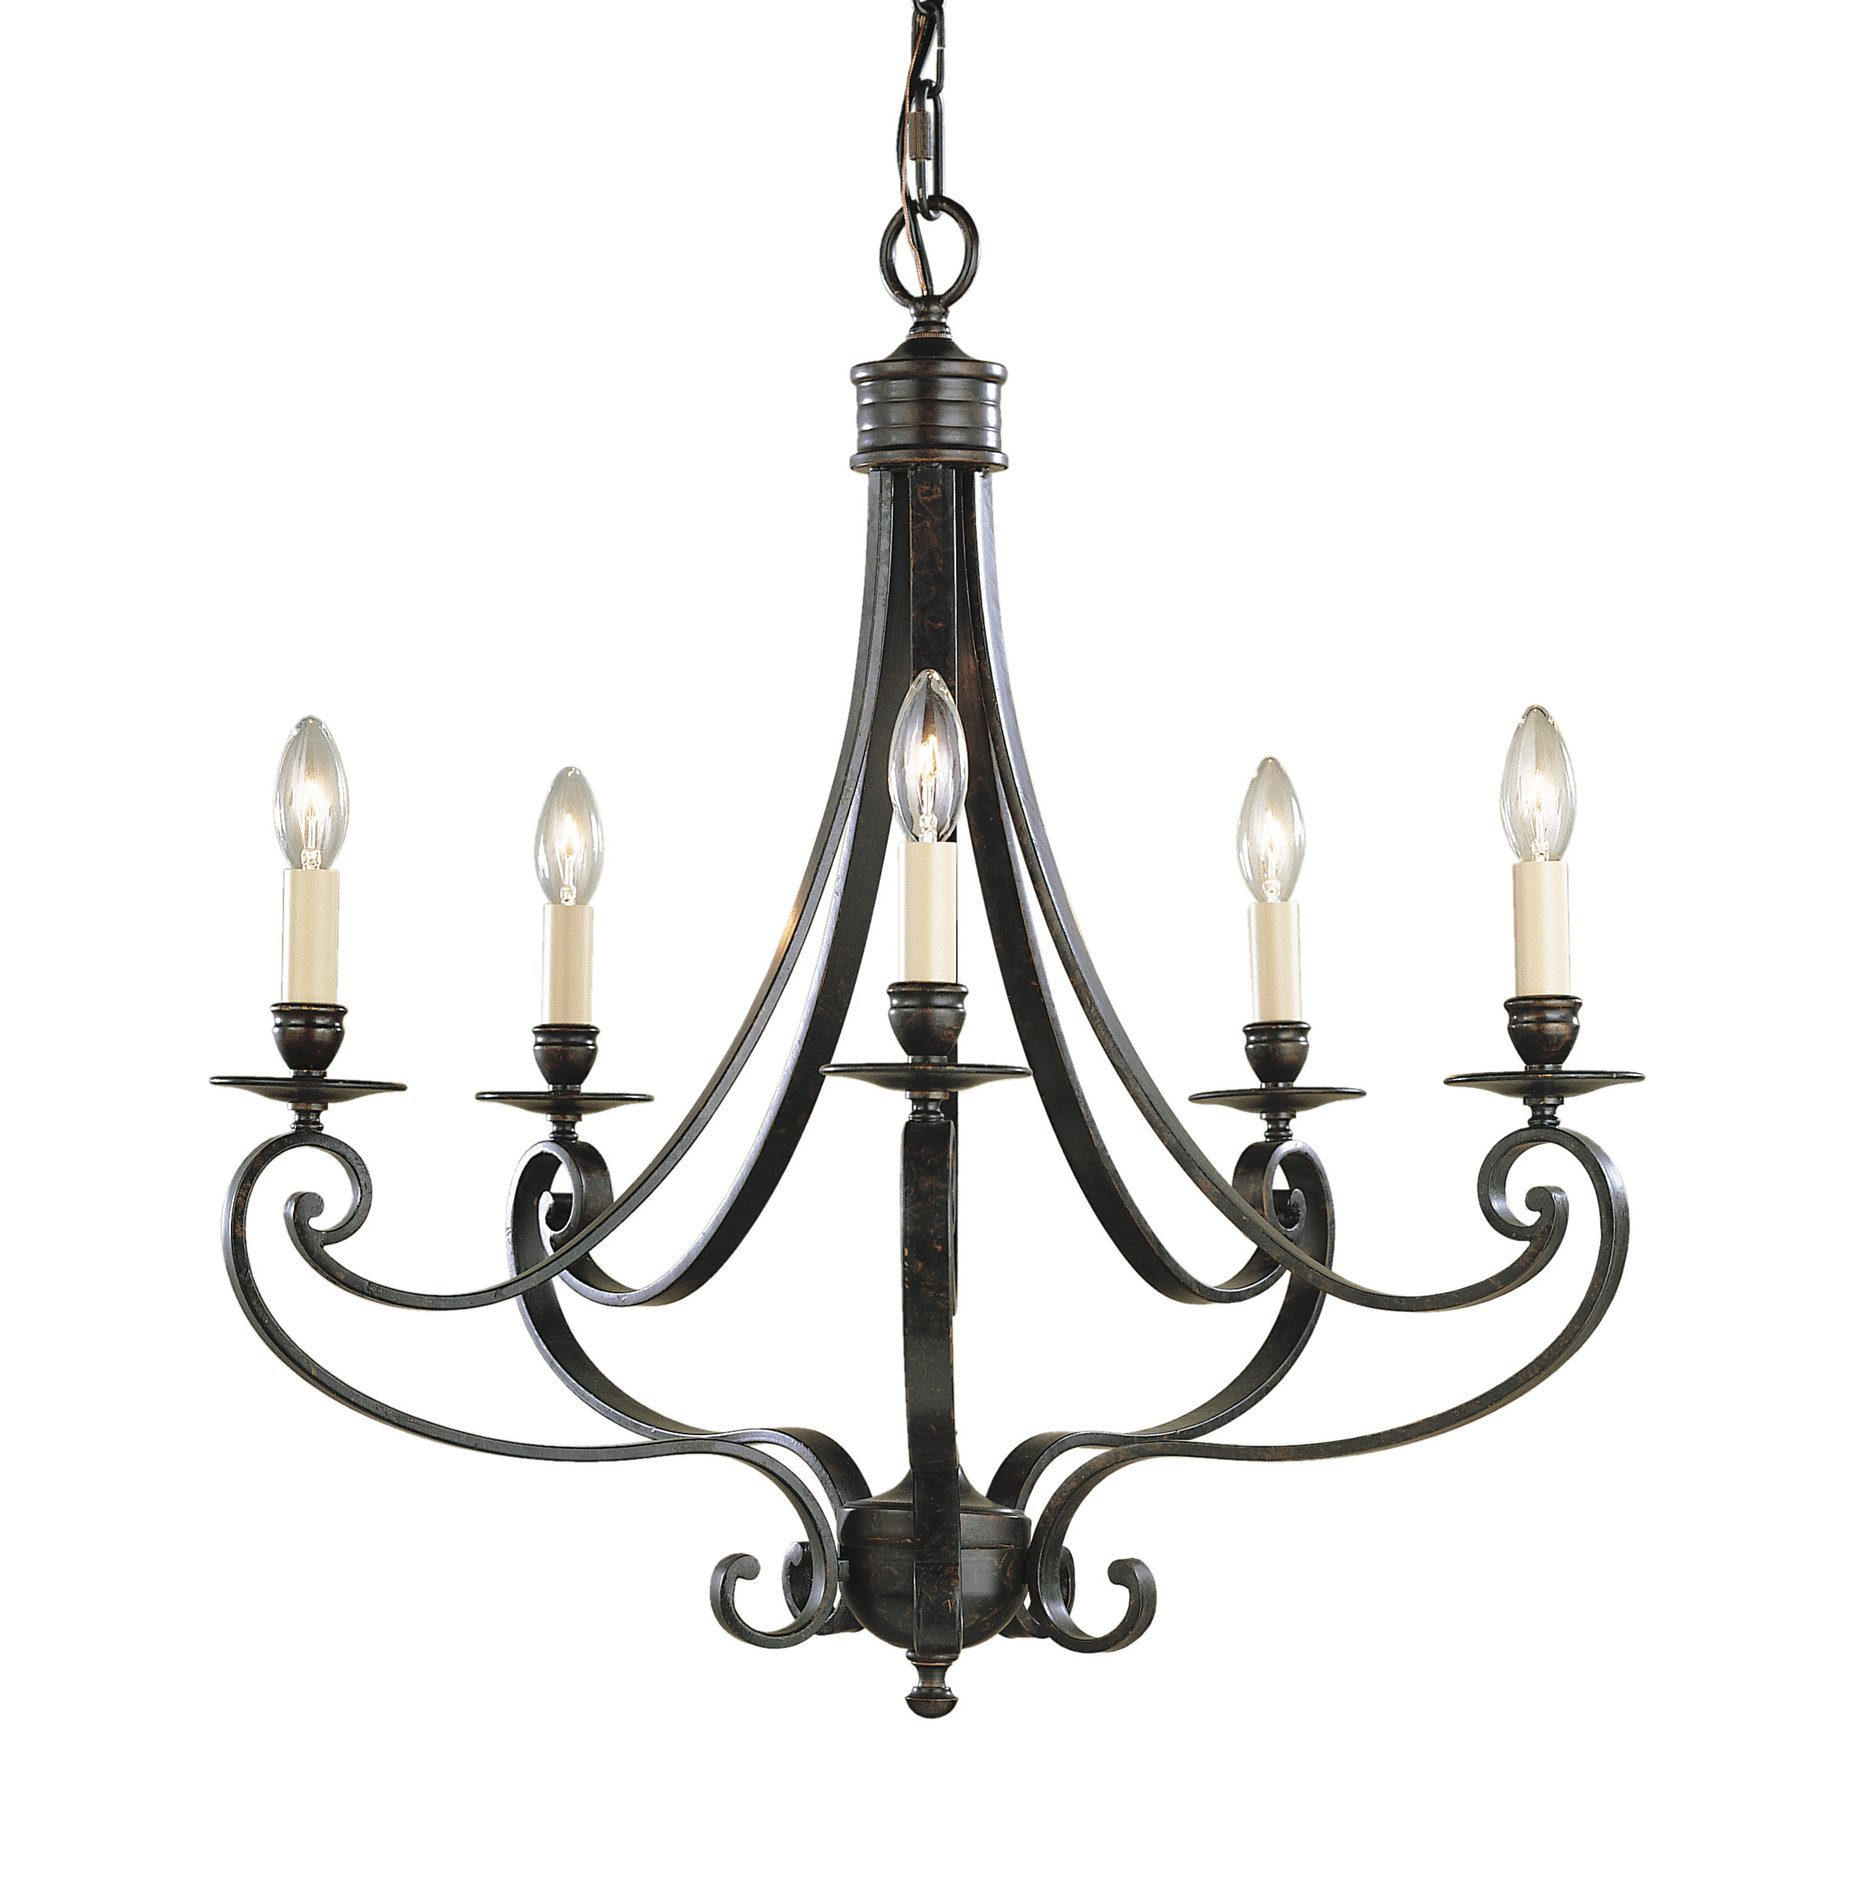 Murray Feiss F 5lbr Cervantes Transitional Chandelier